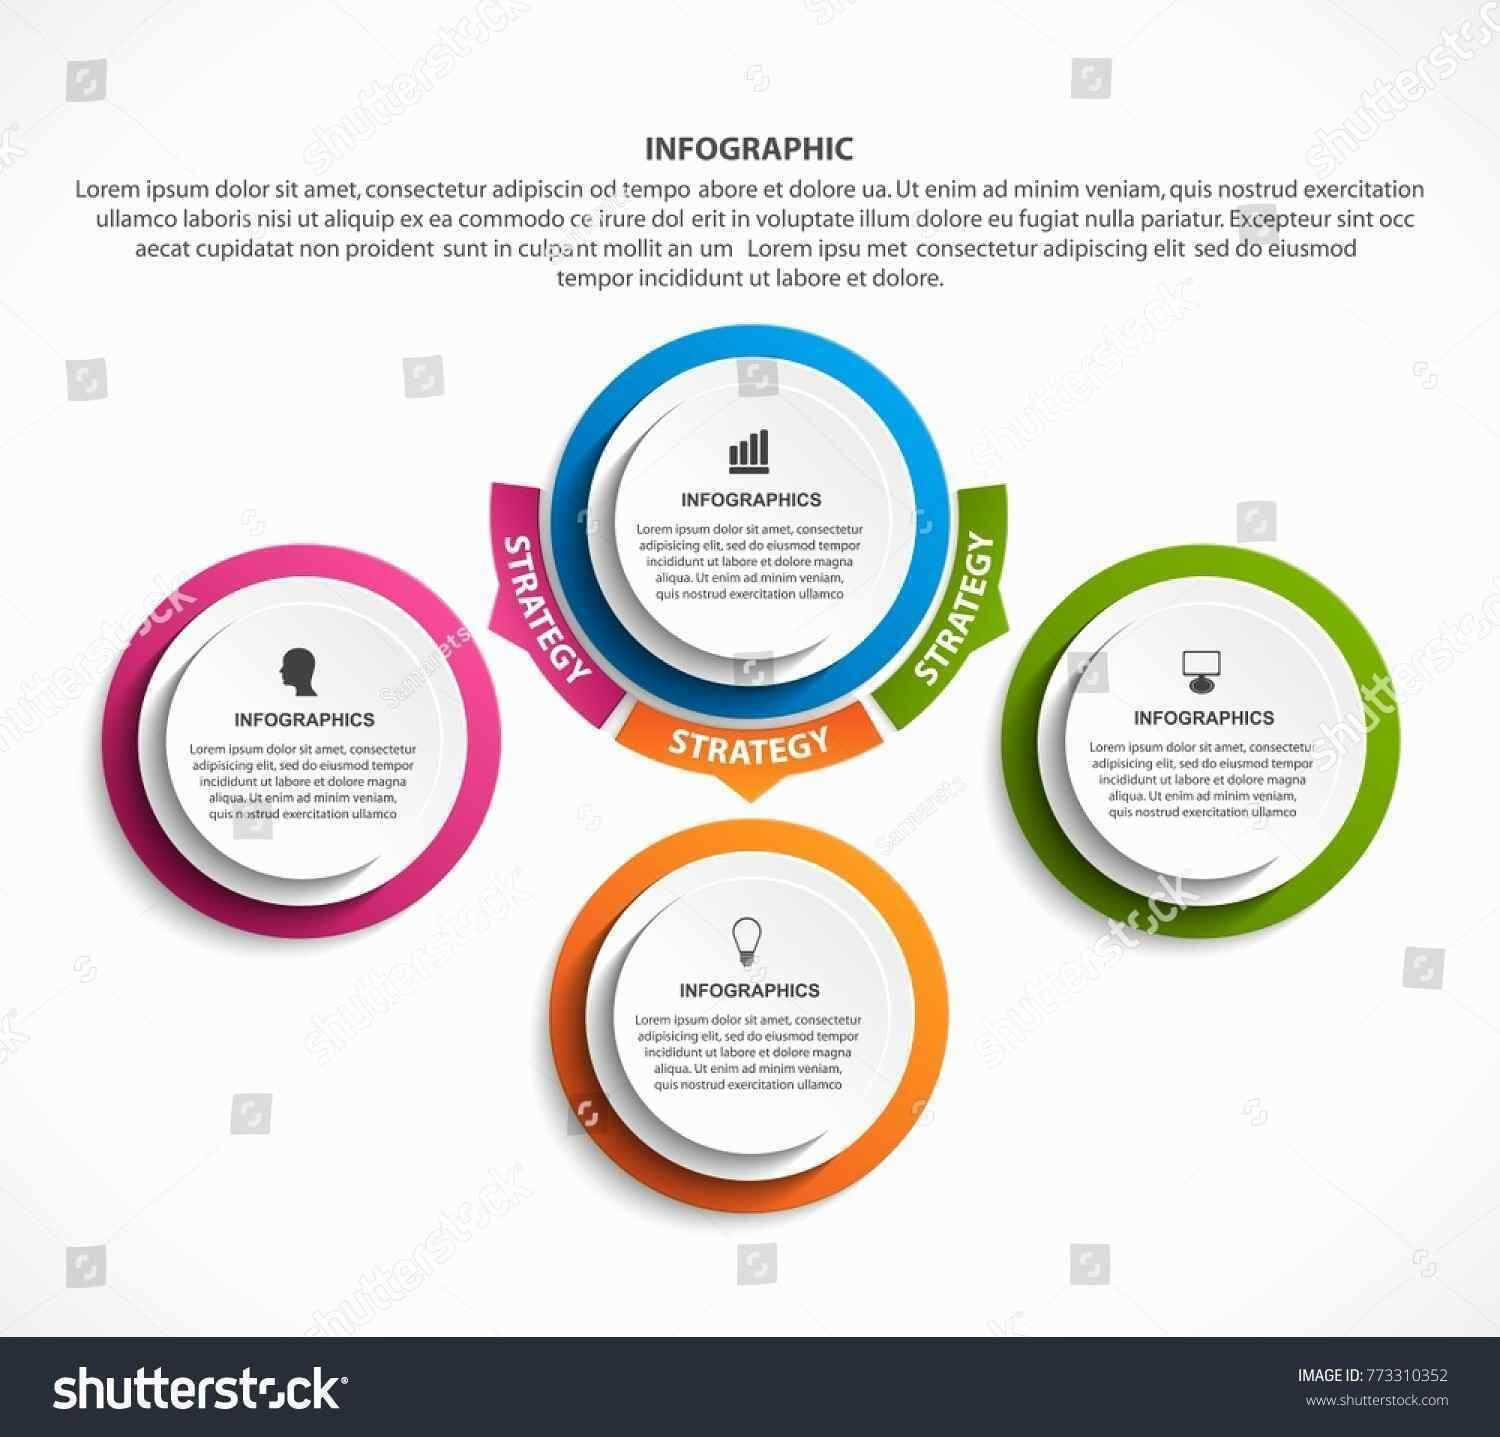 Change Infographic – ˆš ¢Ë†å¡ Change Template Powerpoint With Regard To How To Change Template In Powerpoint